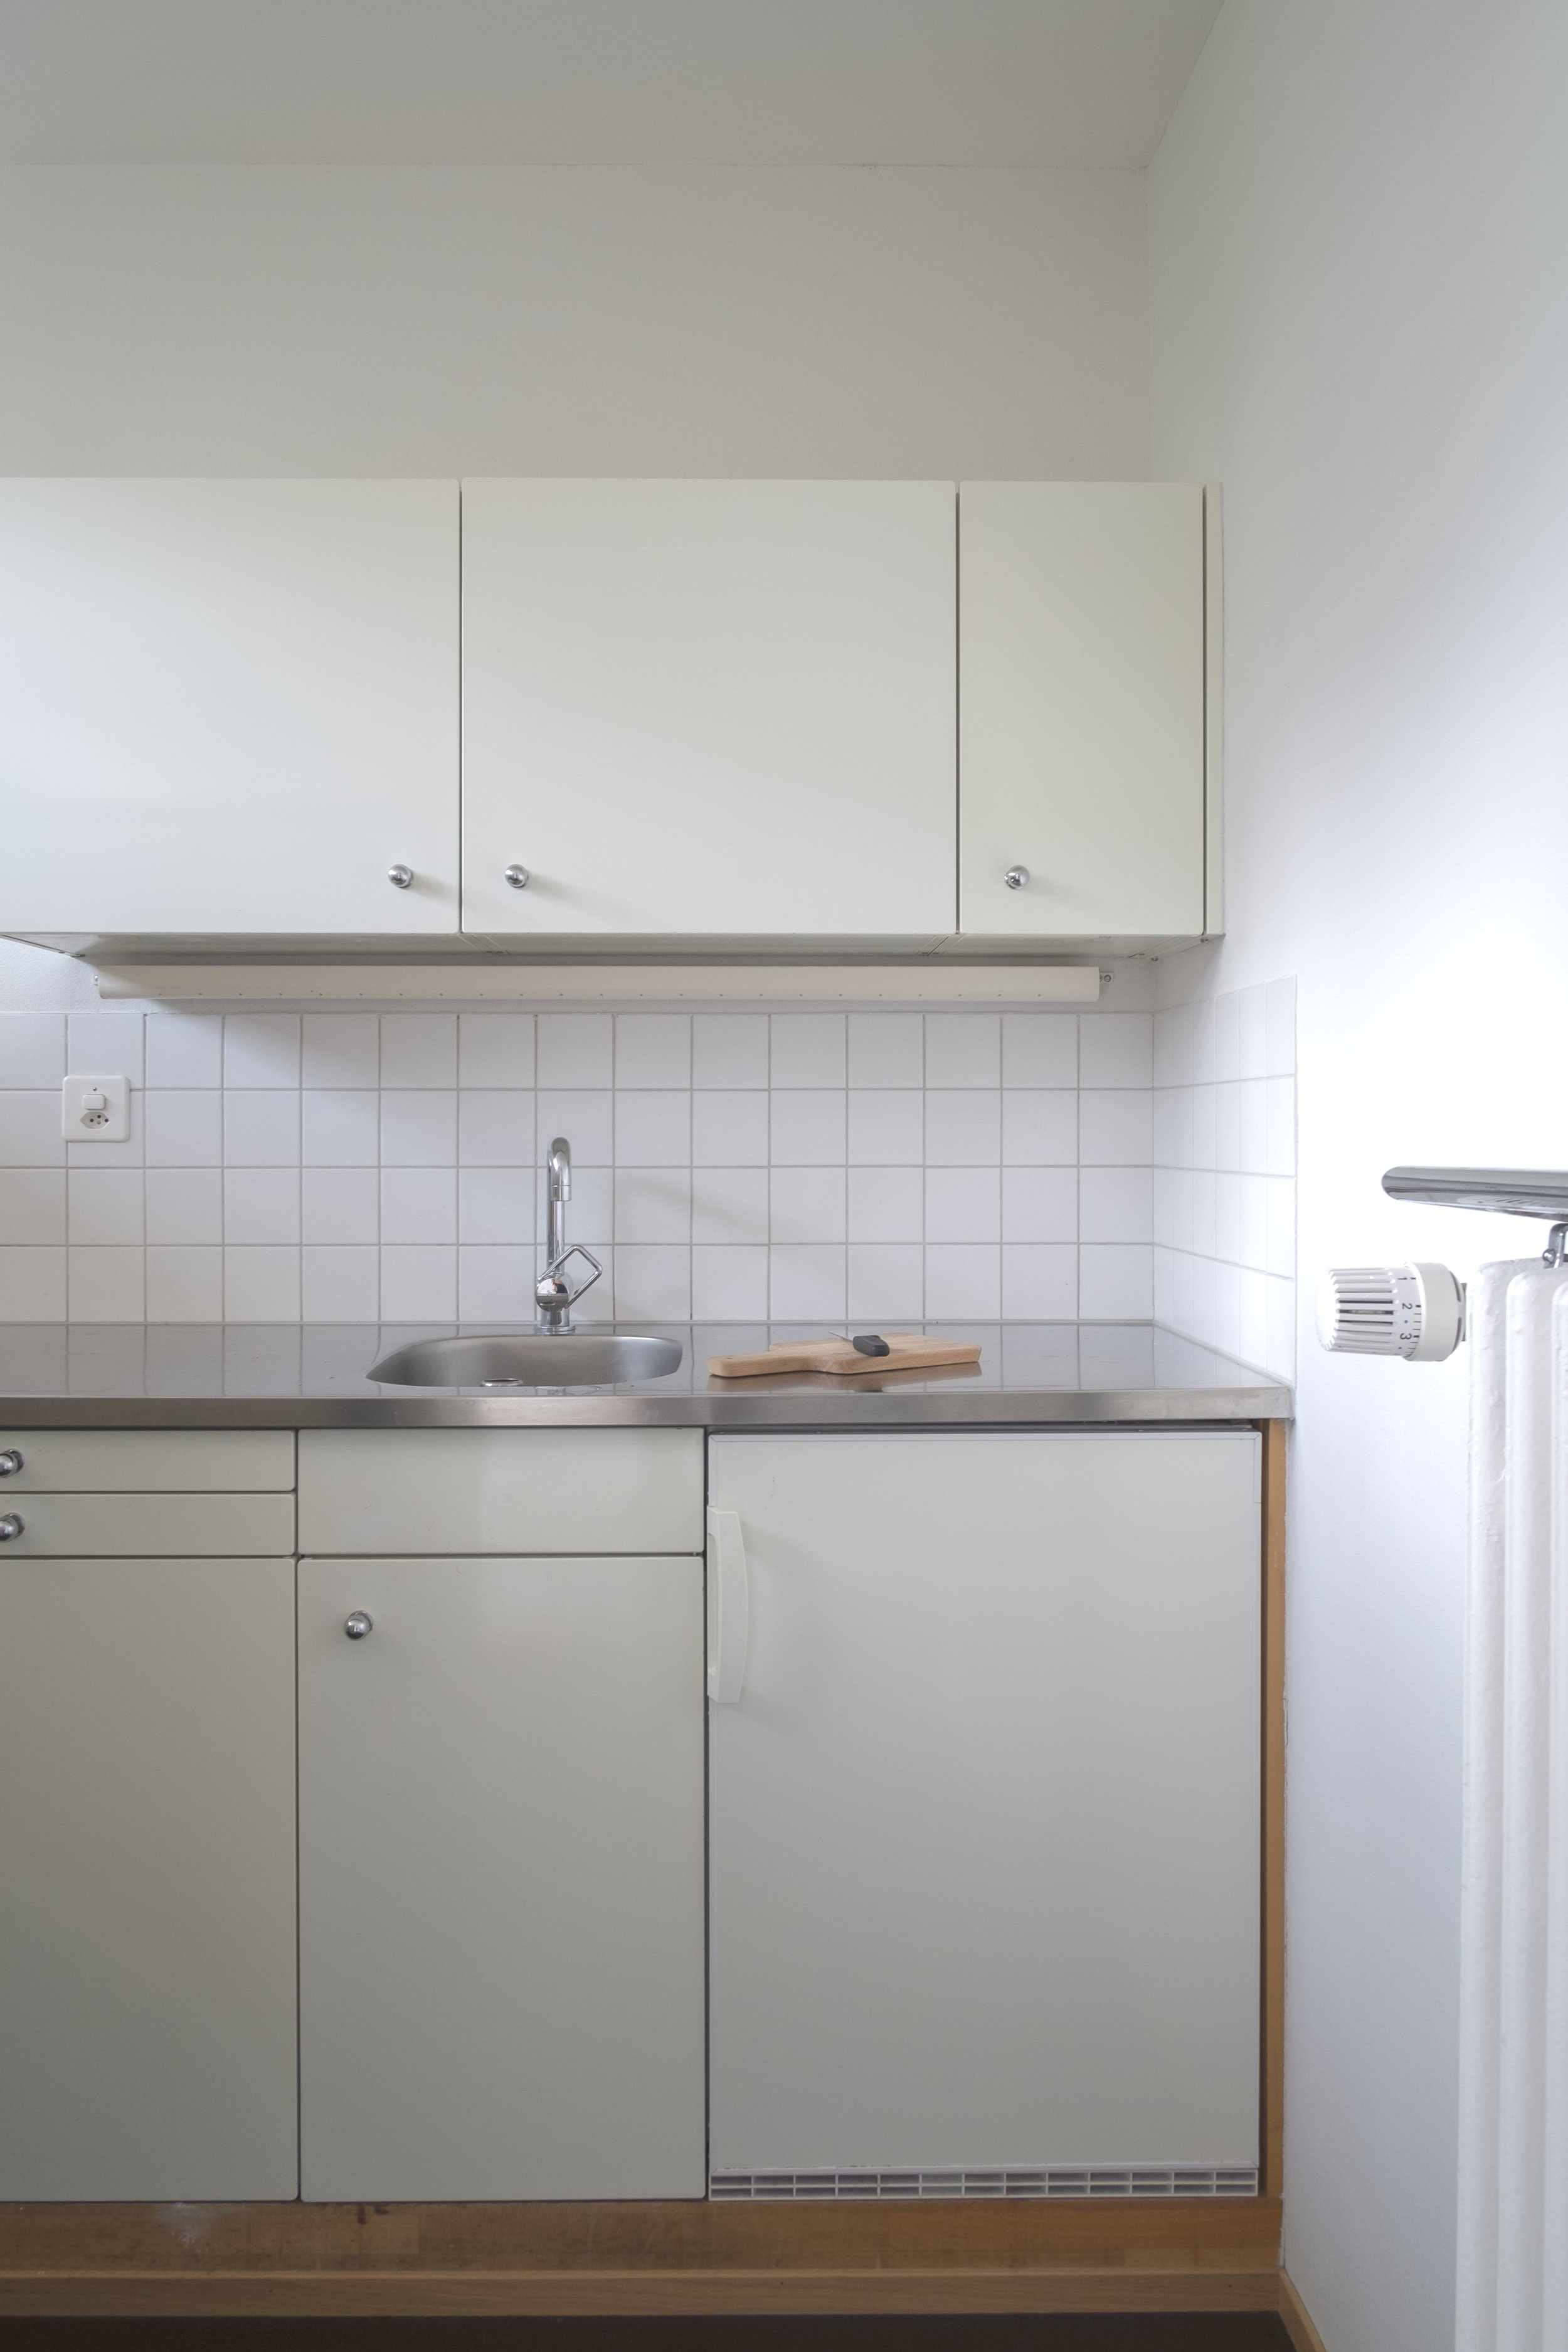 Kitchen renovated in the 1980s